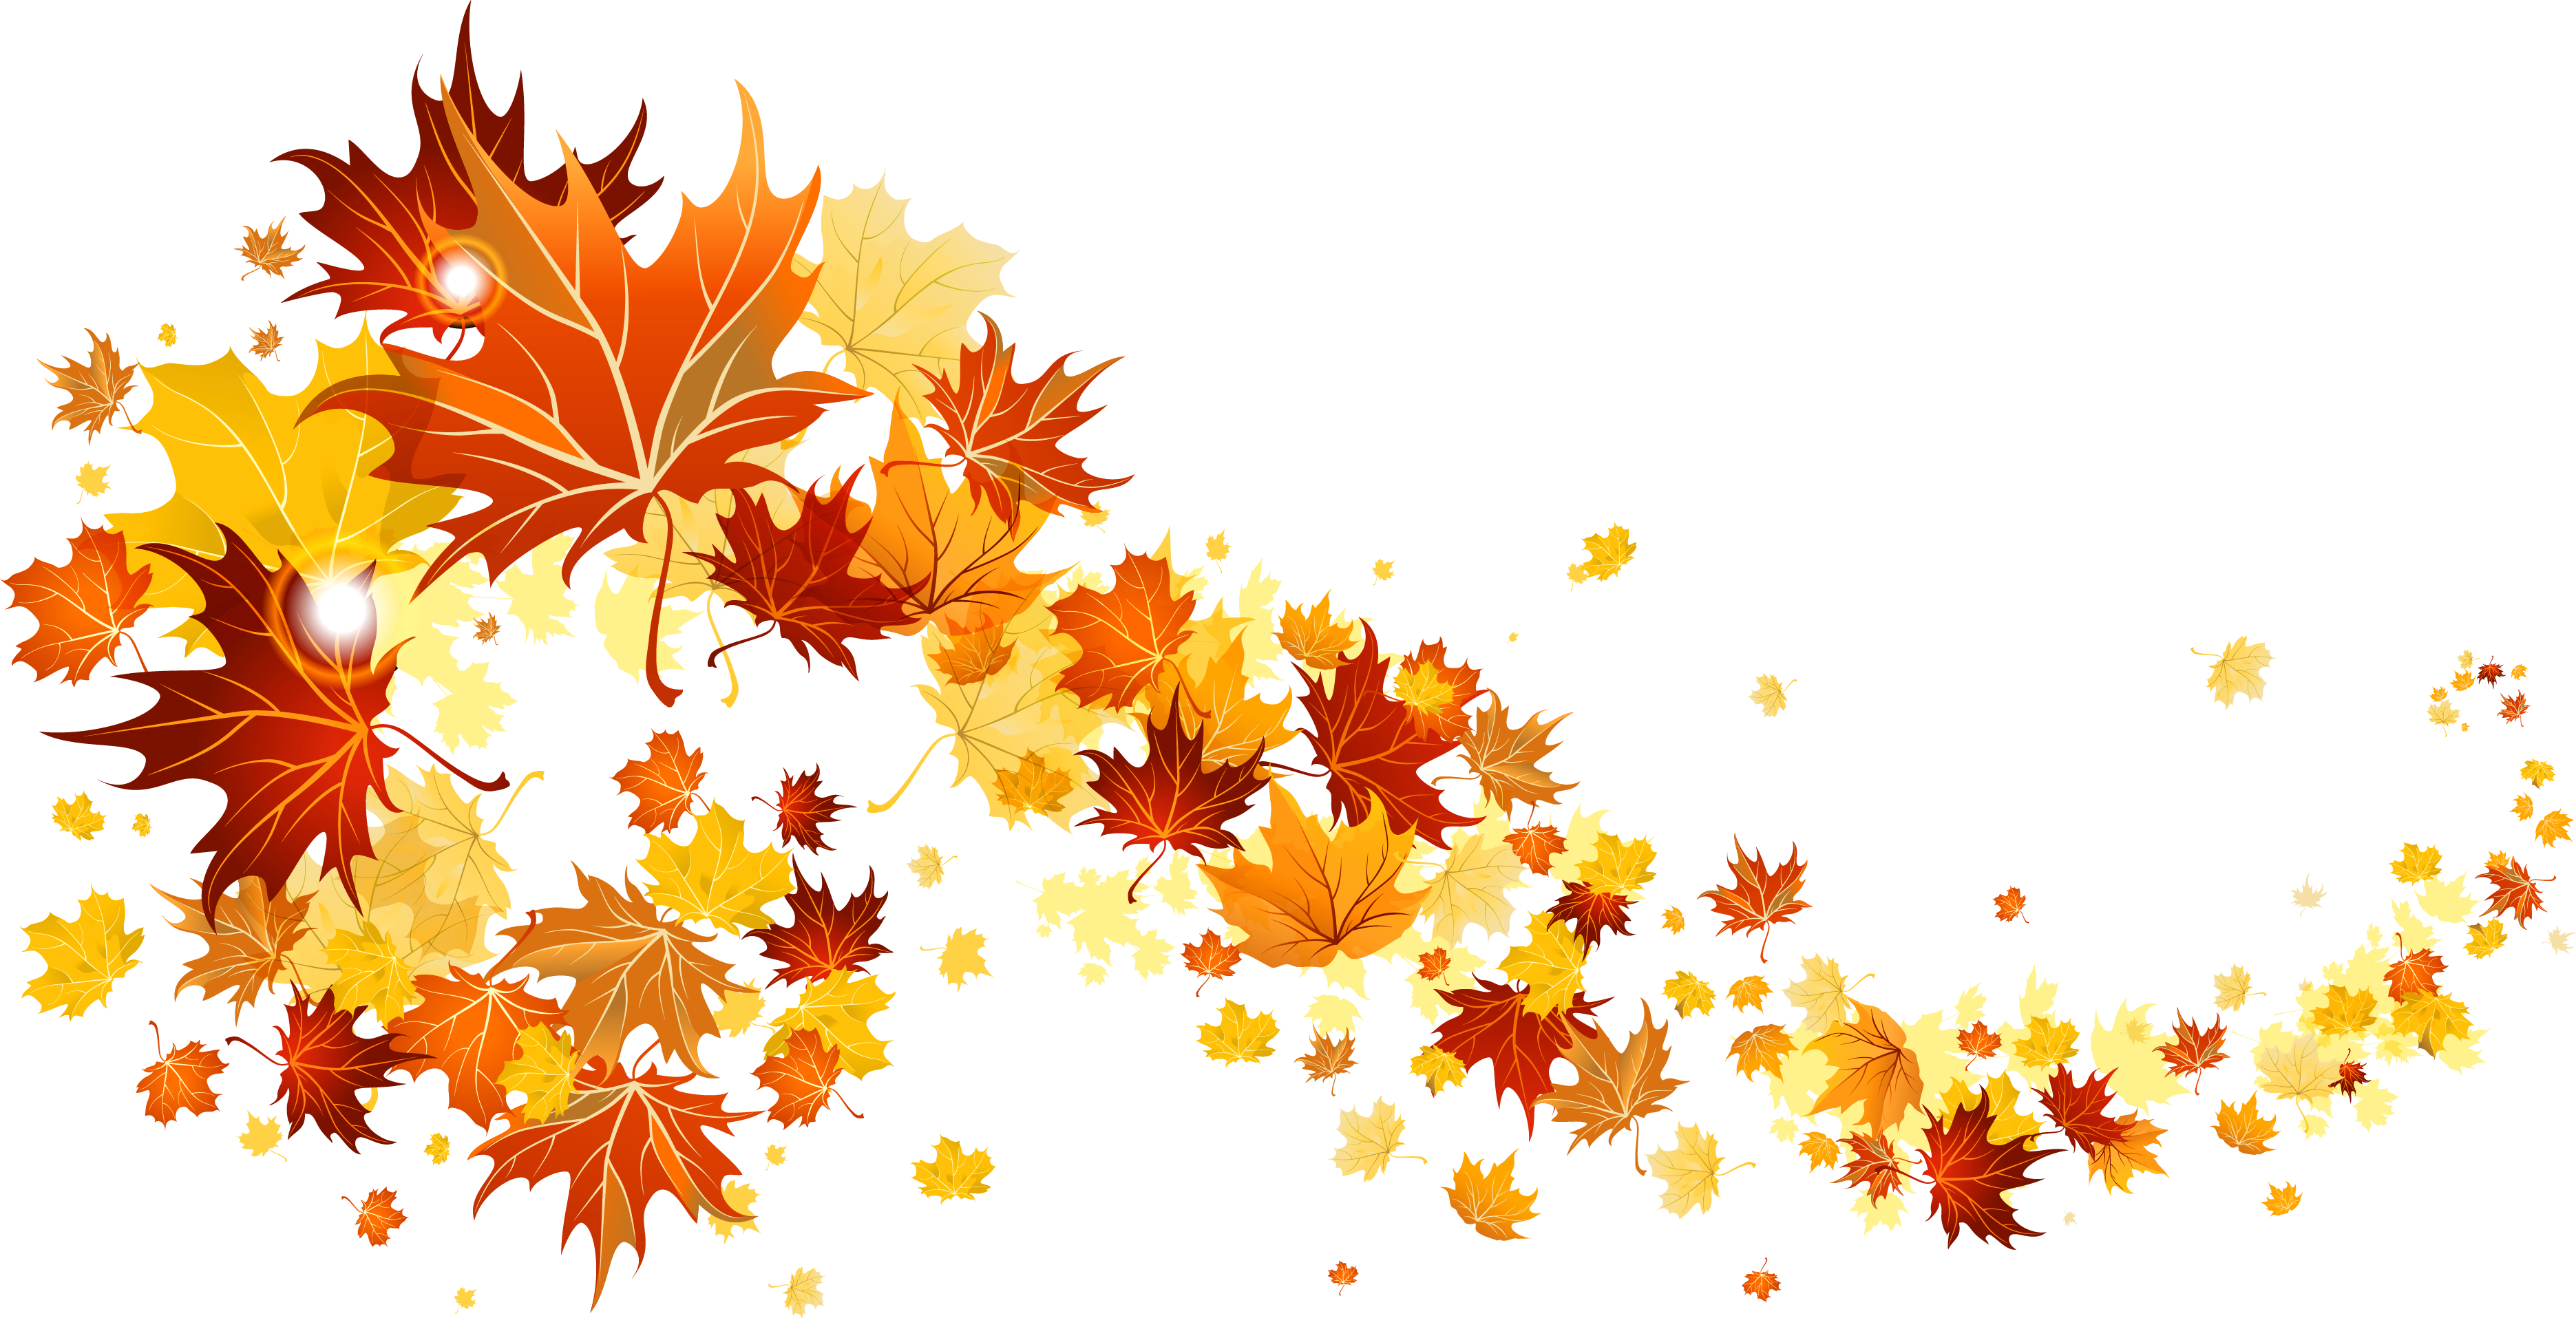 Fall Leaves Transparent Picture Png 3742 1915 Fall Clip Art Autumn Leaves Fall Leaves Tattoo